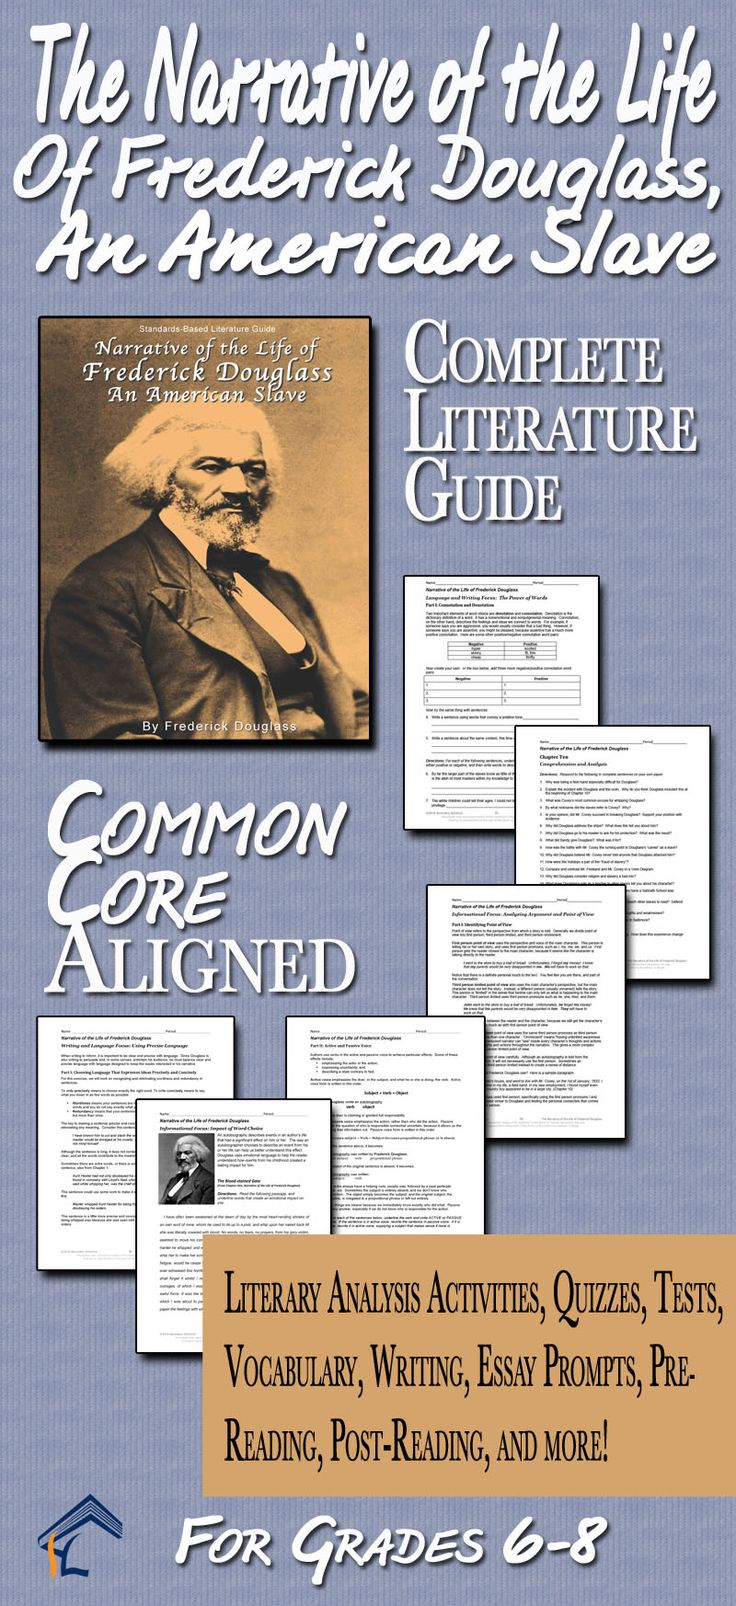 learning to and write frederick douglass essay annotations  best ideas about frederick douglass narrative narrative of frederick douglass common core aligned literature guide for